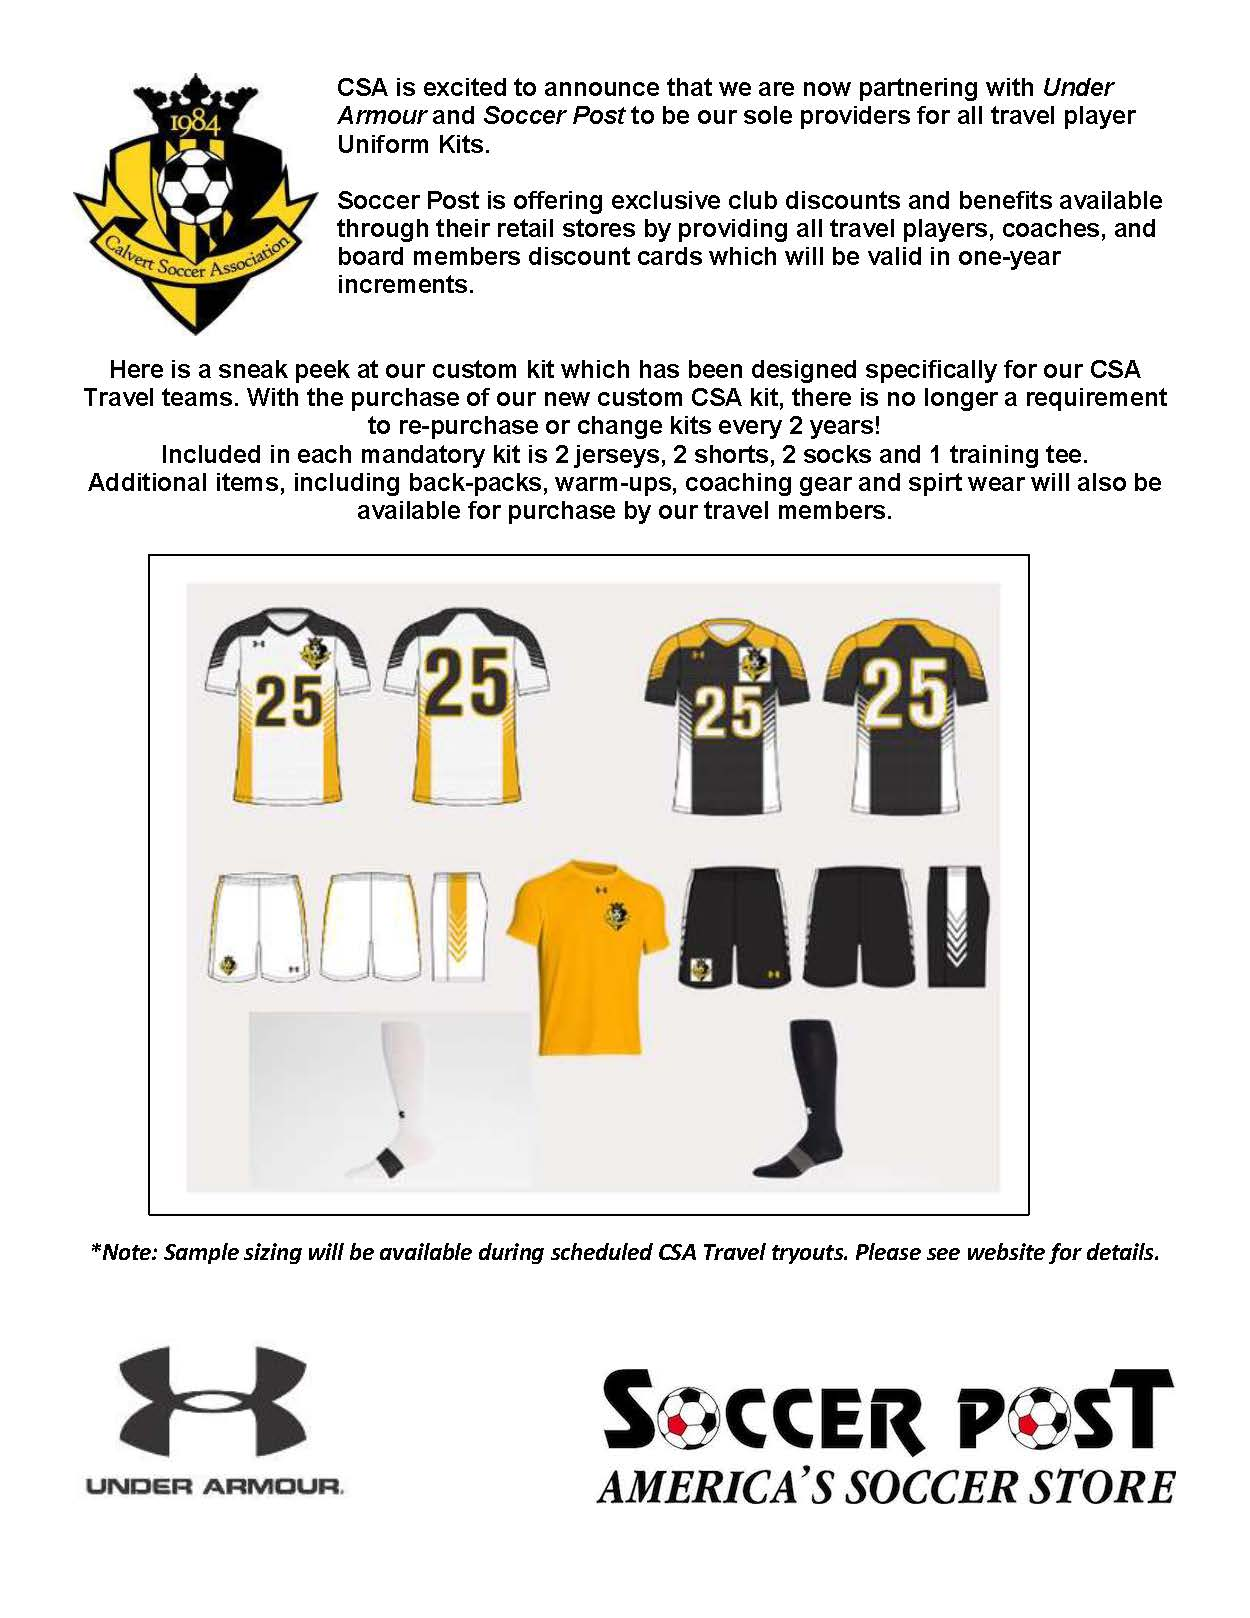 CSA and Under Armour announce uniform partnership with Soccer Post